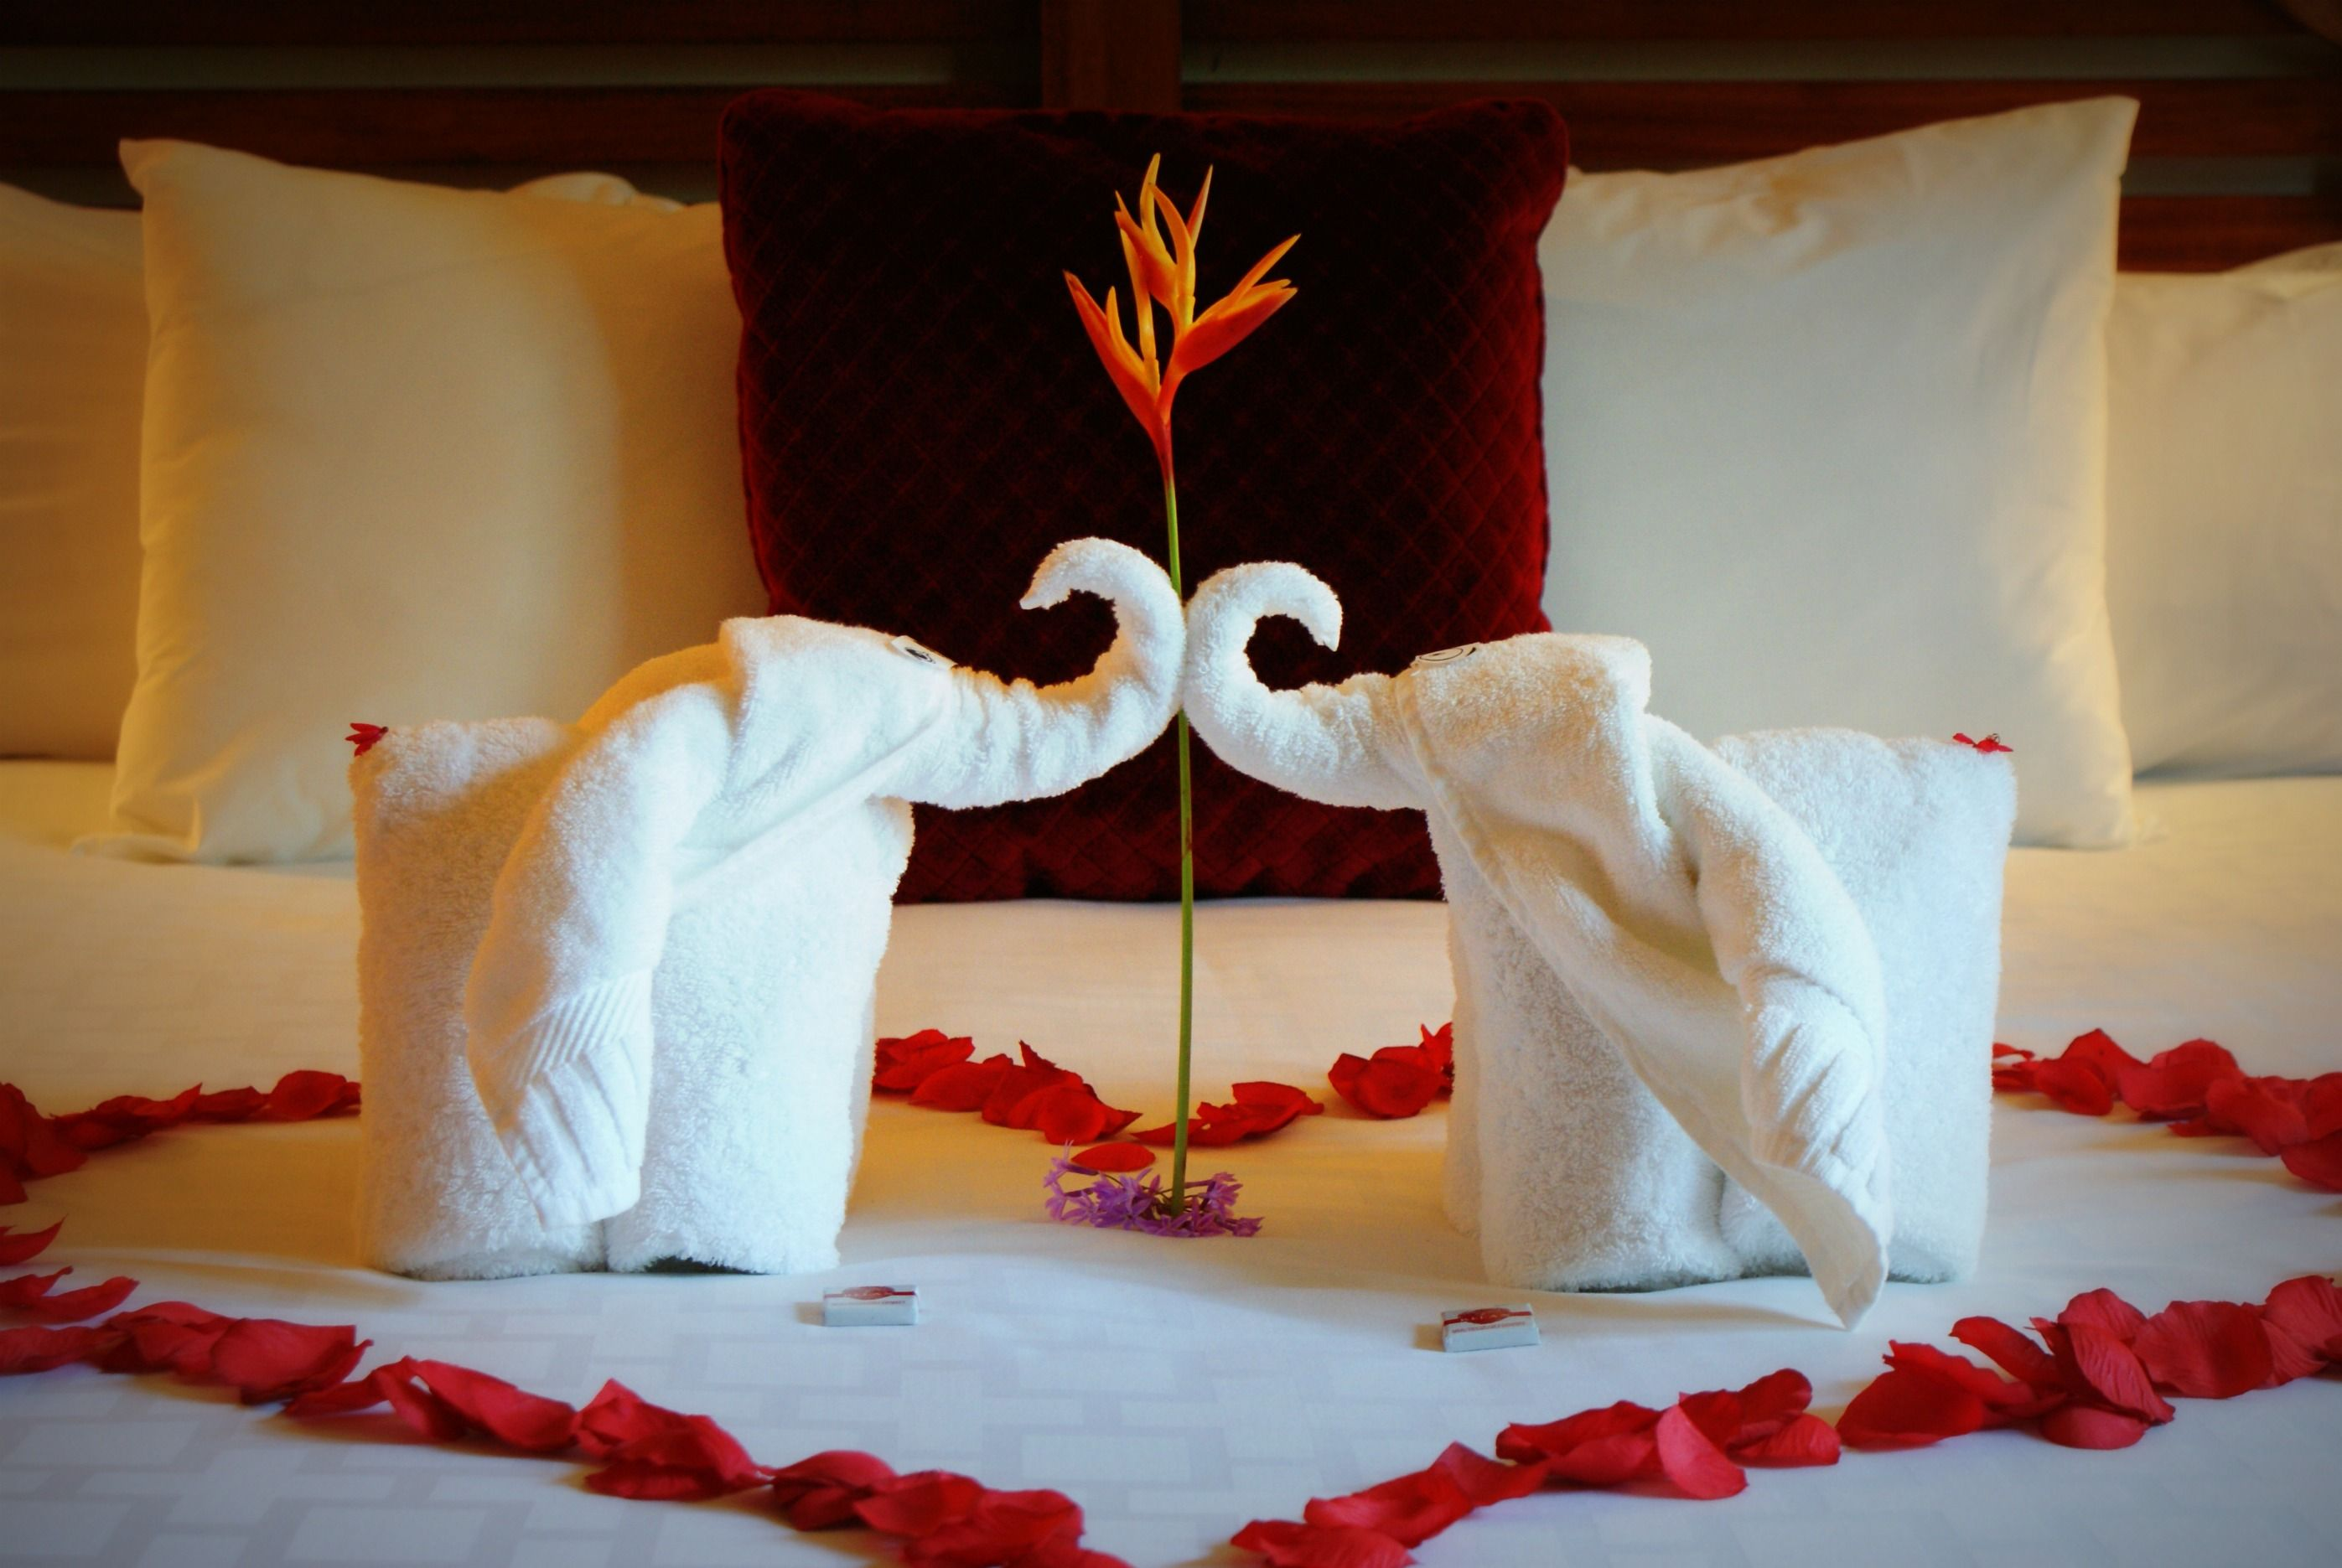 Romantic Honeymoon Suite Setup At The Www Elconresort Com